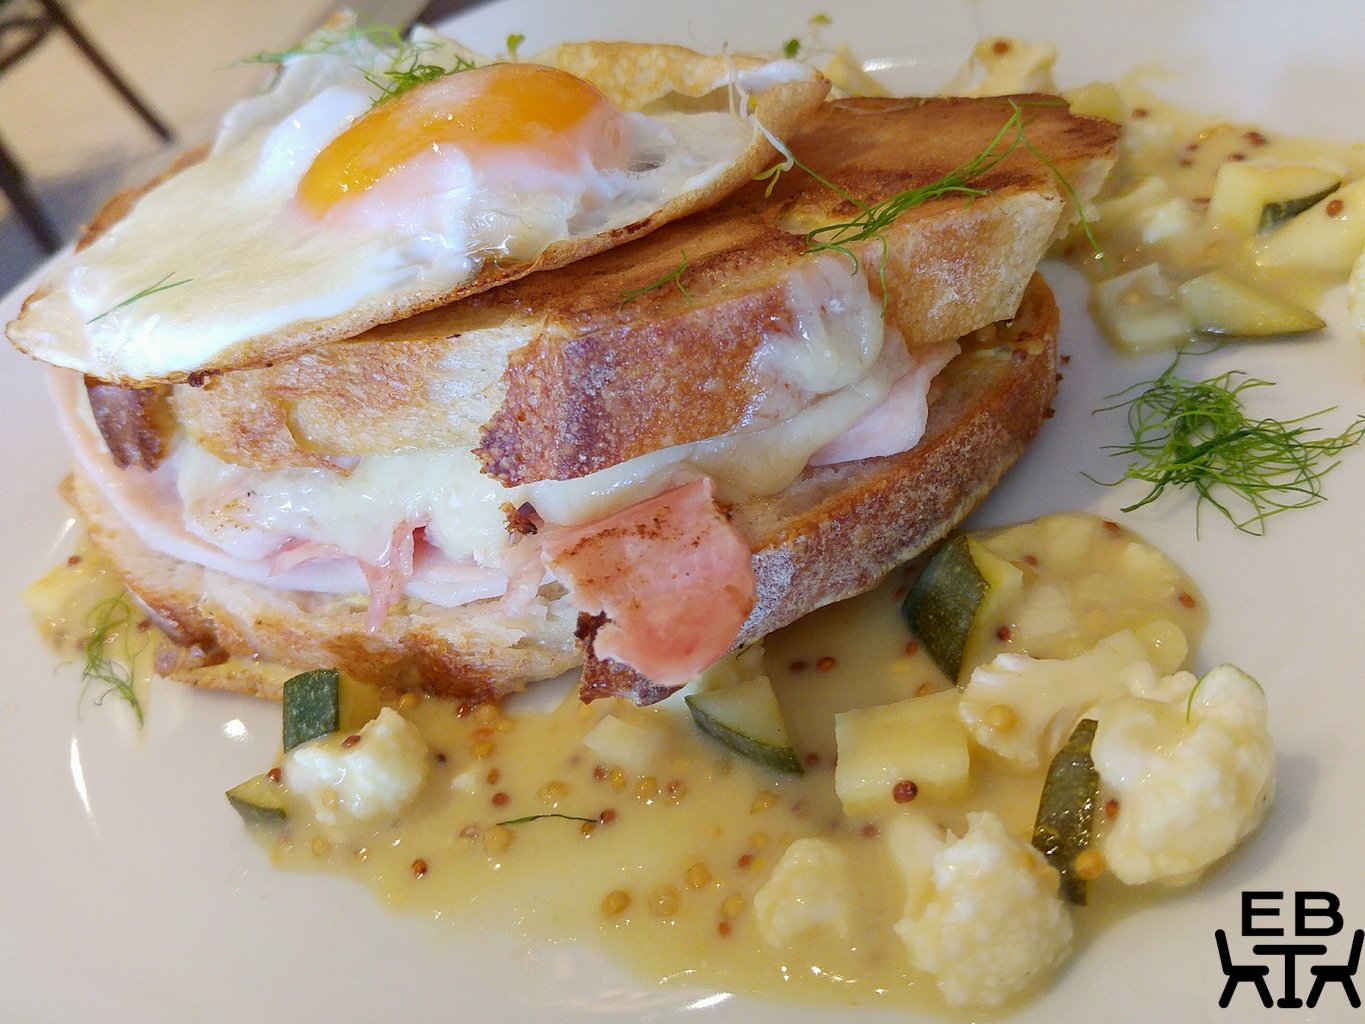 Seven south croque madam